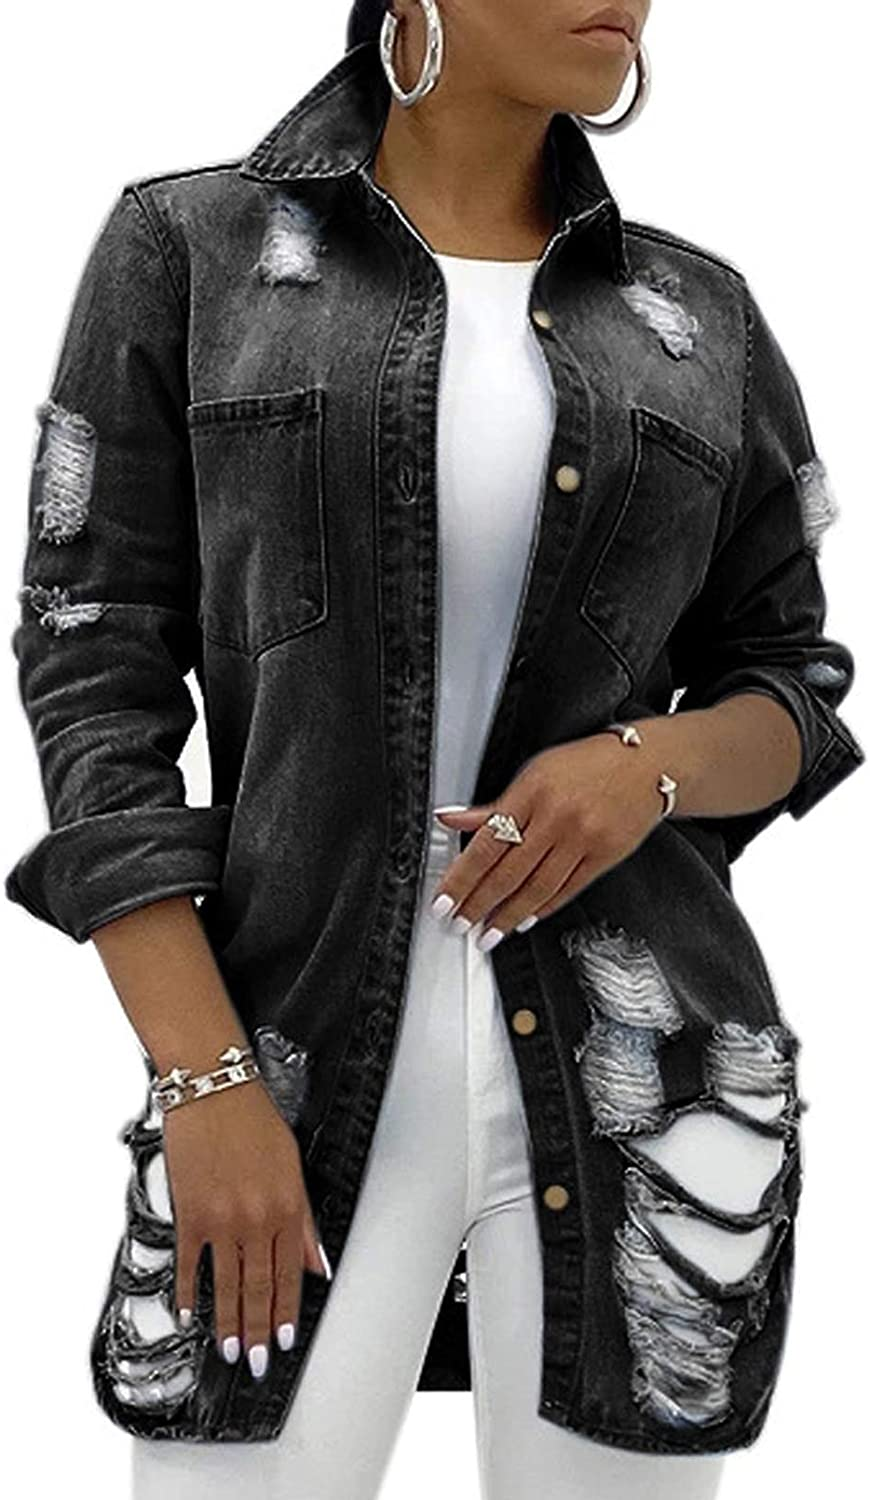 Women's Max 71% Max 89% OFF OFF Casual Camouflage Jacket With Pockets V S Neck Long Sexy